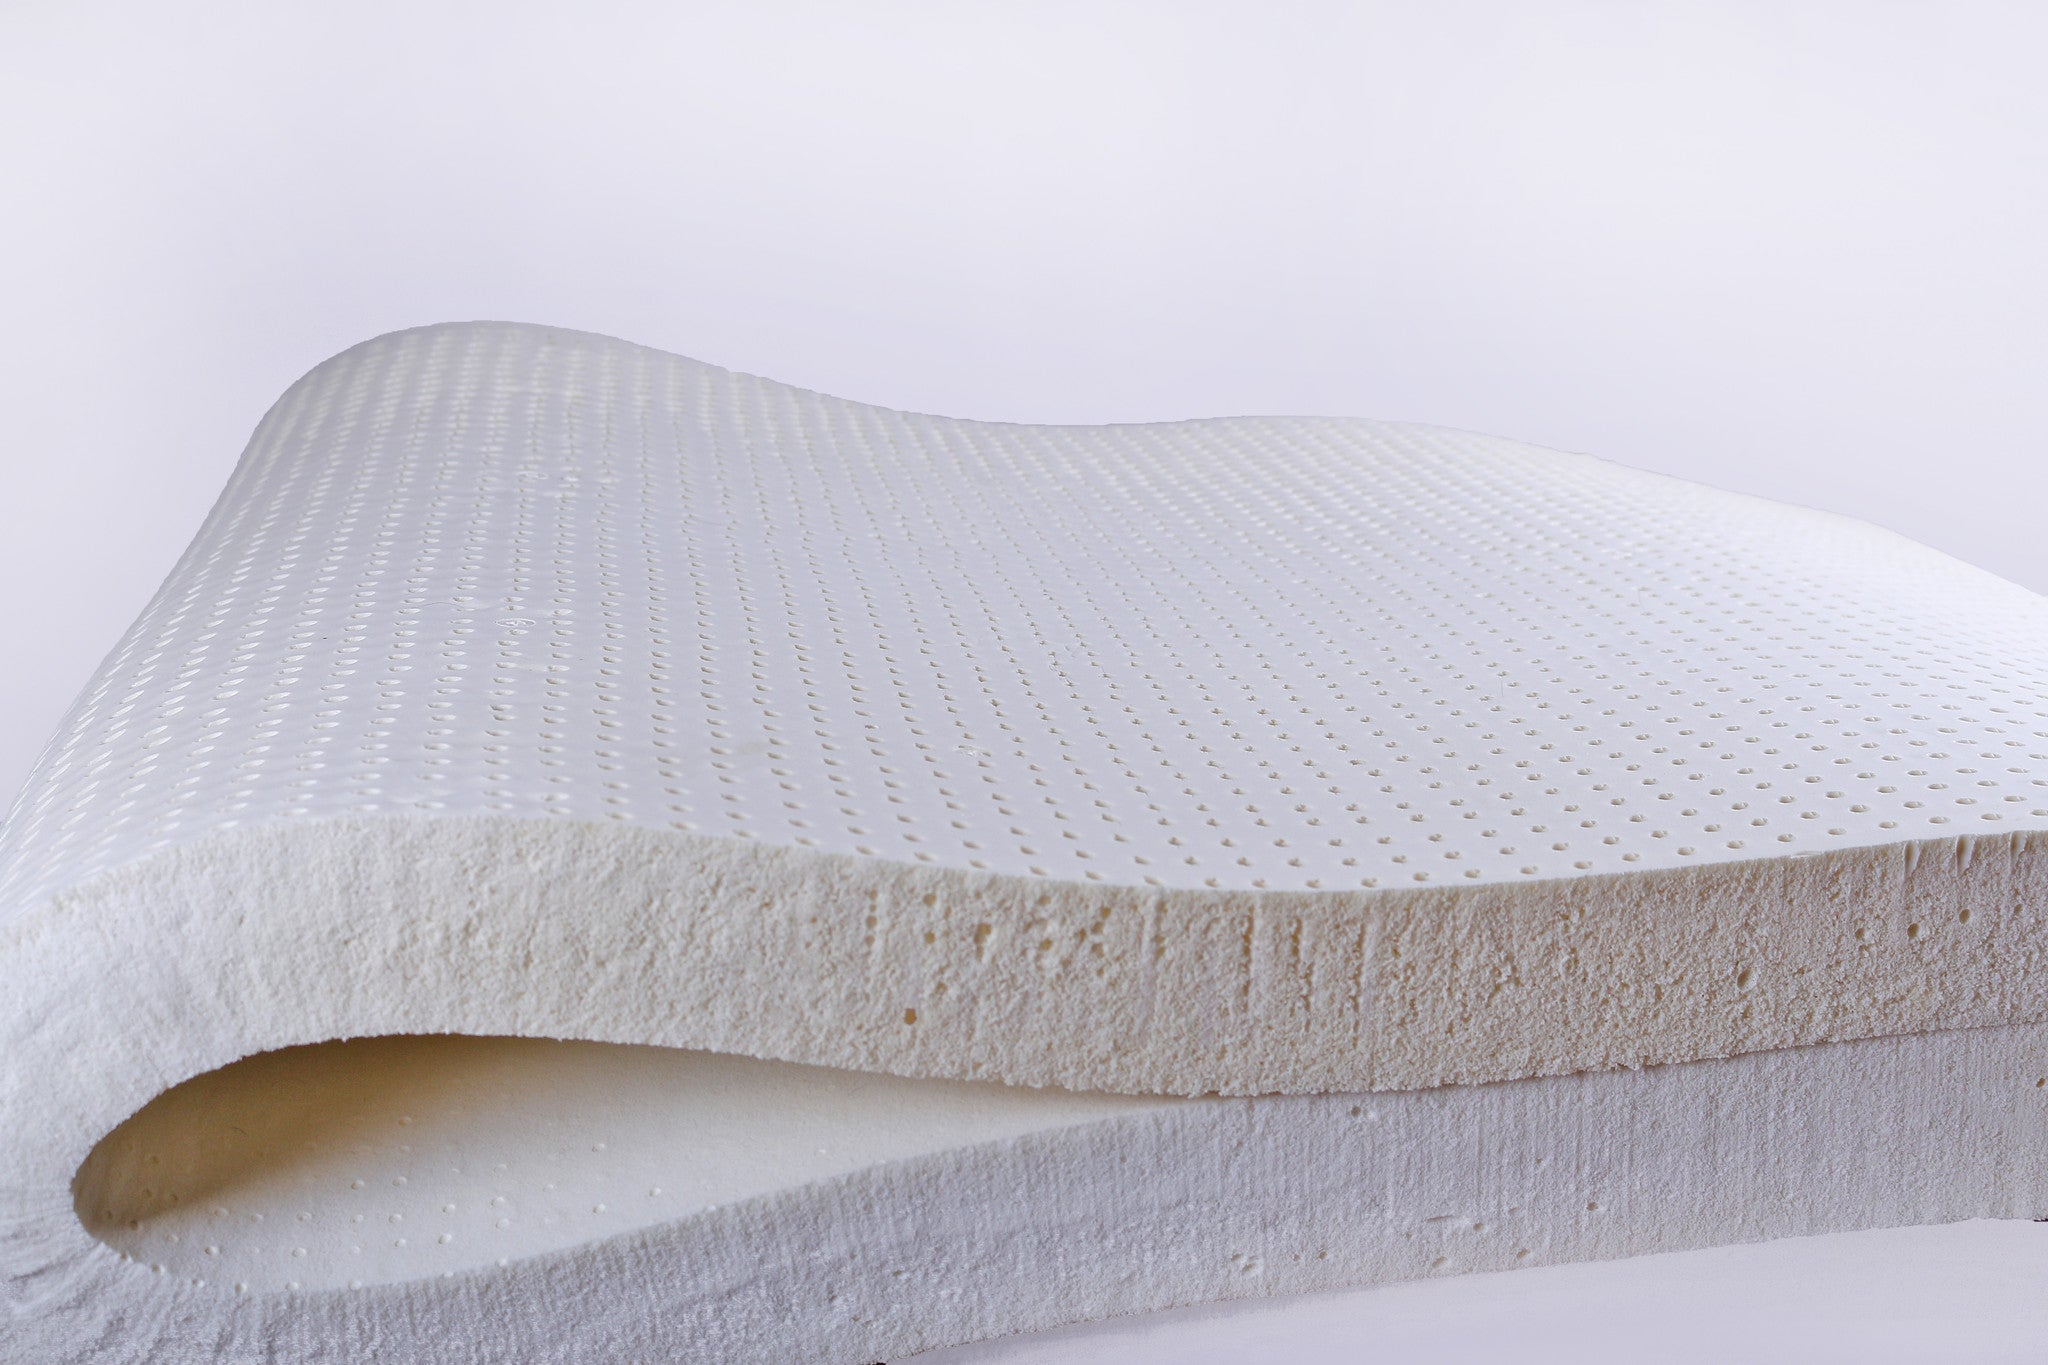 100 natural talalay latex mattress topper 100% Natural Talalay Latex Mattress Topper 100 natural talalay latex mattress topper